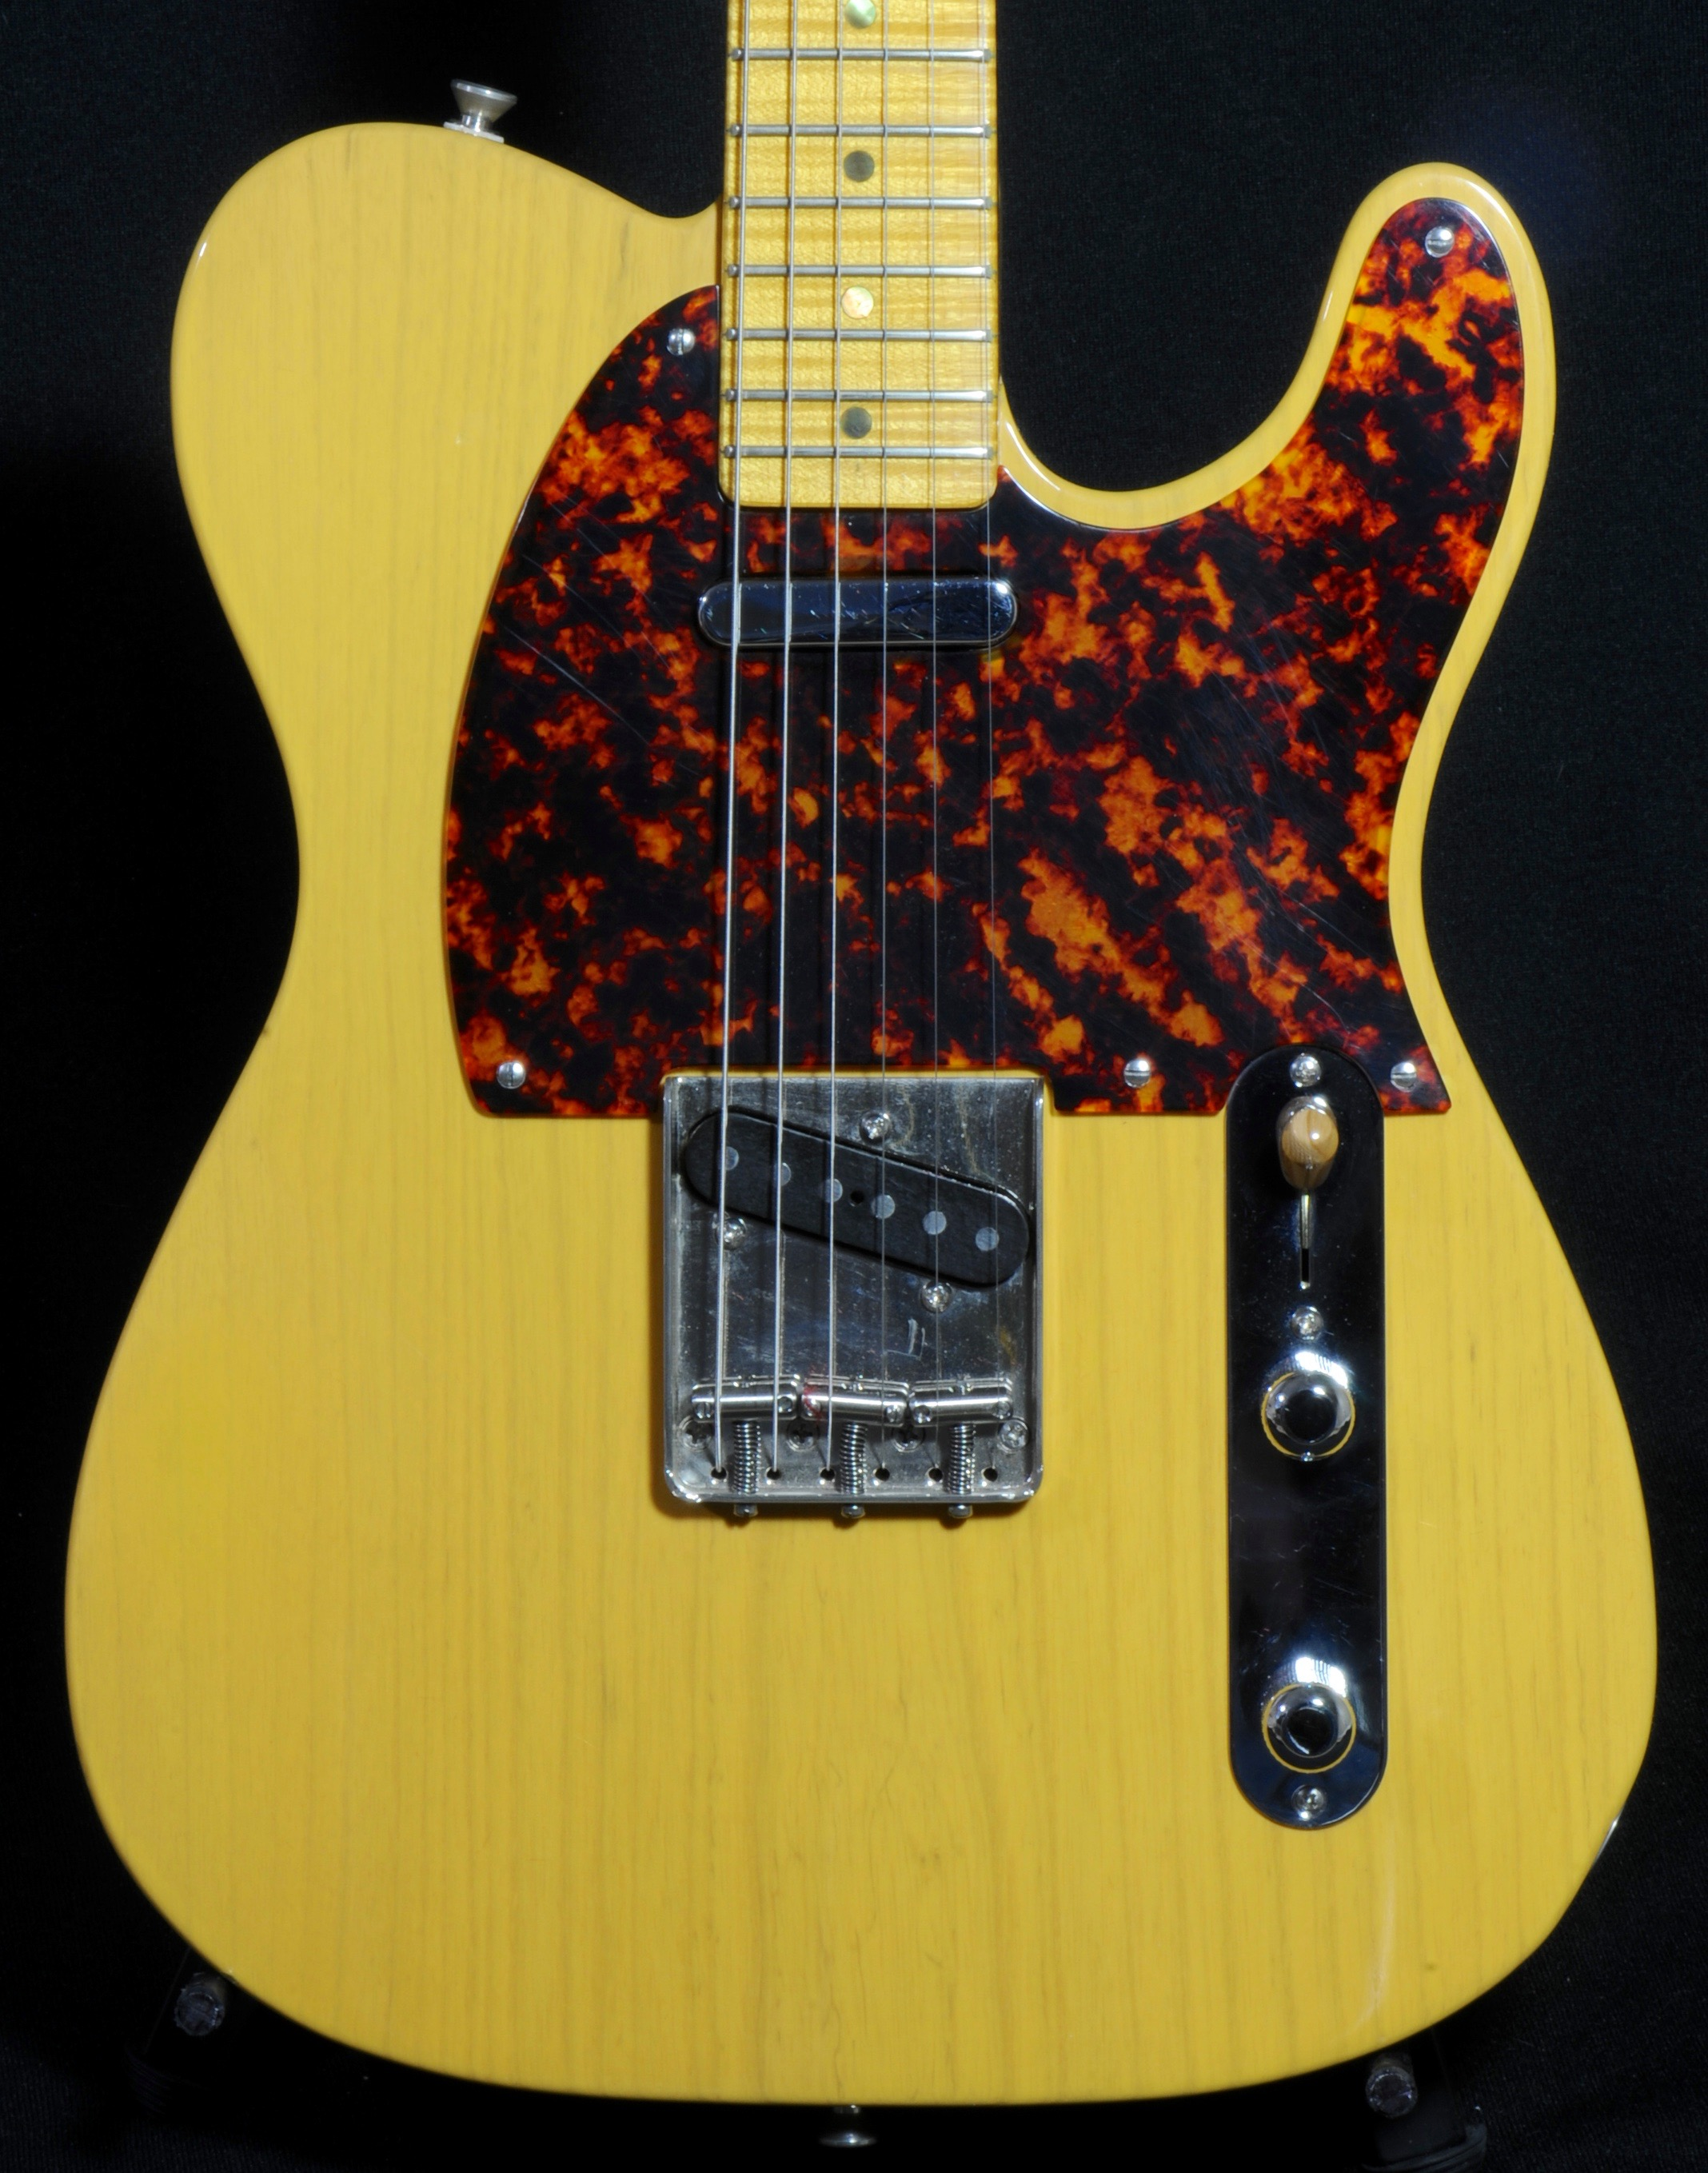 Detemple '52 Tele :  Hall-of-Fame Tone on THIS Guitar